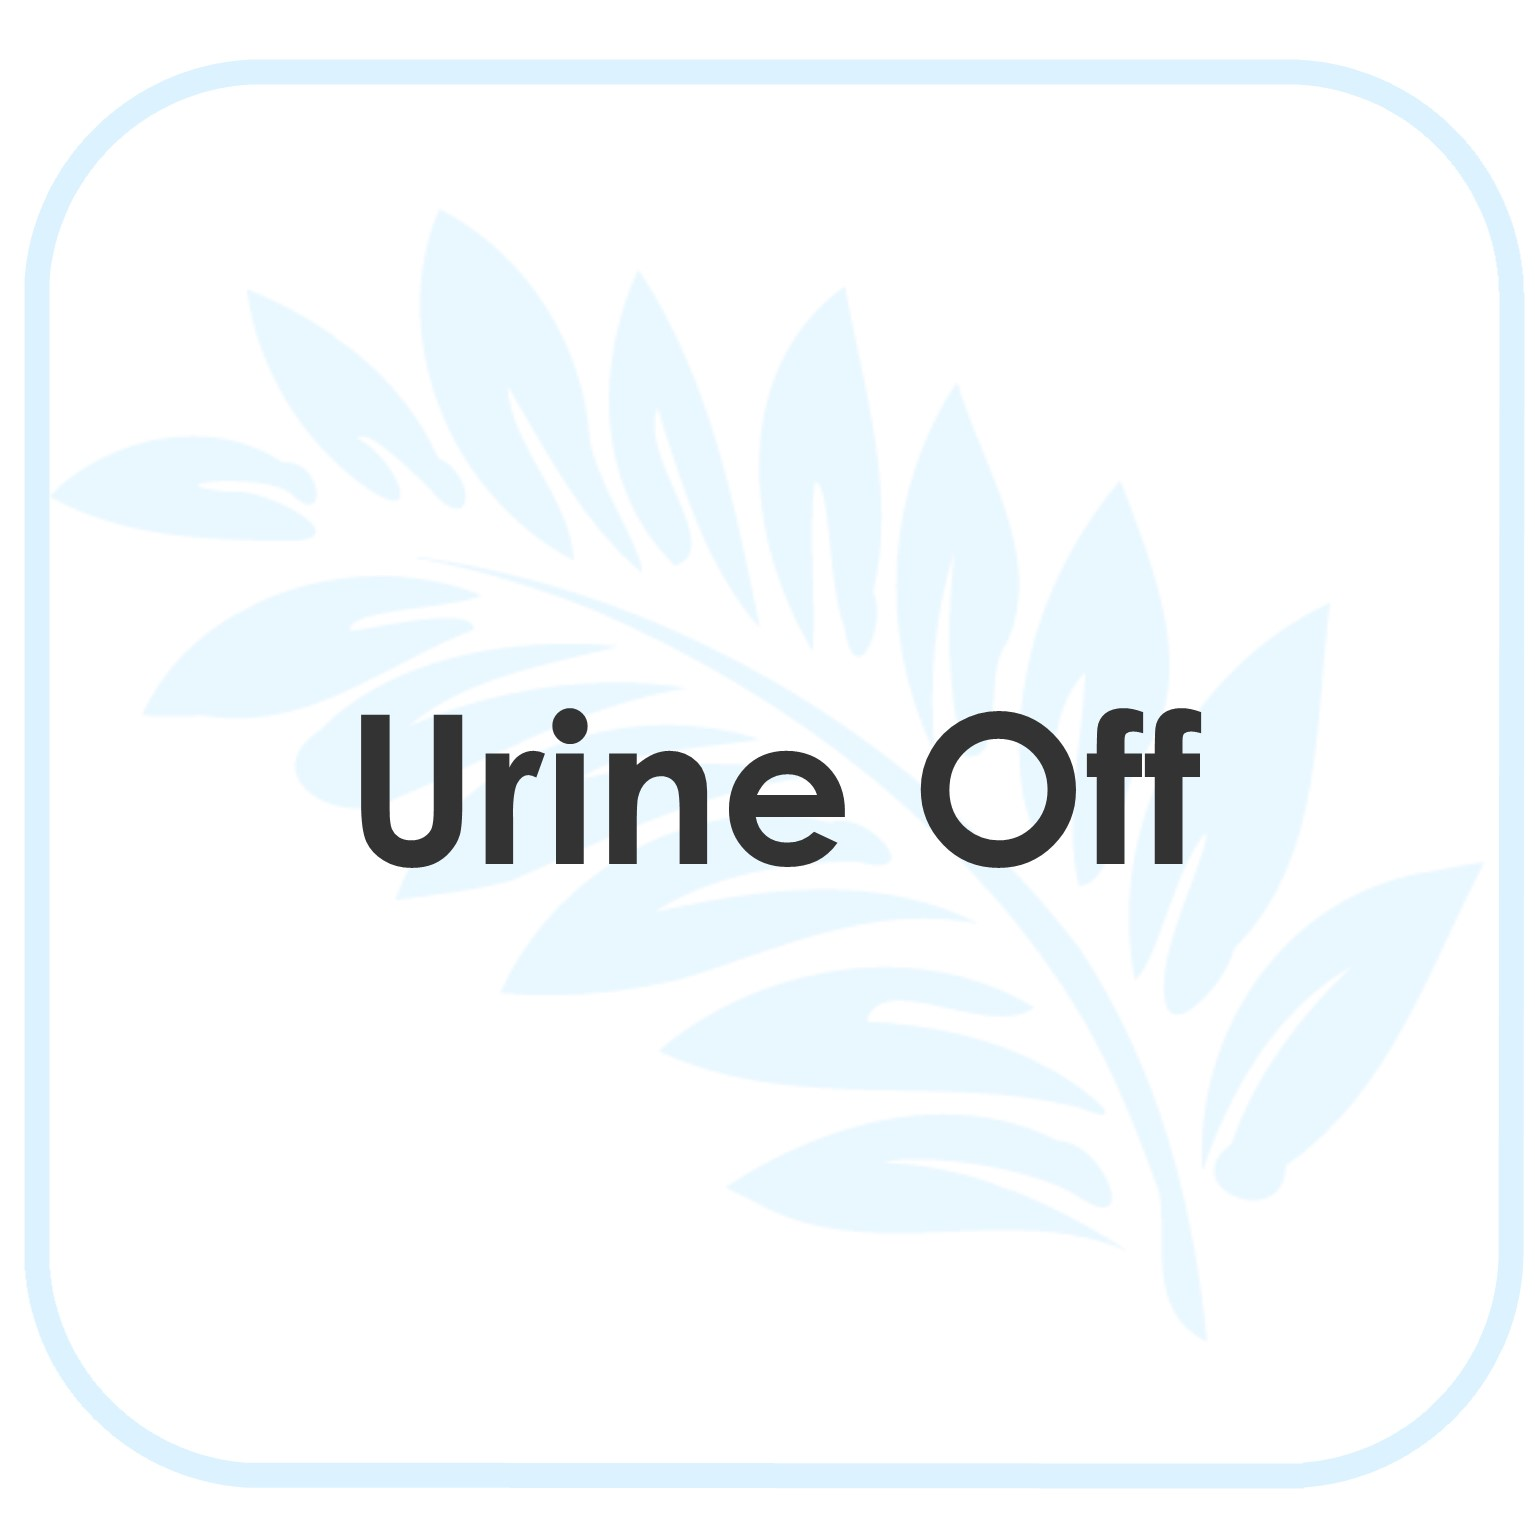 Urine Off Product Instructions